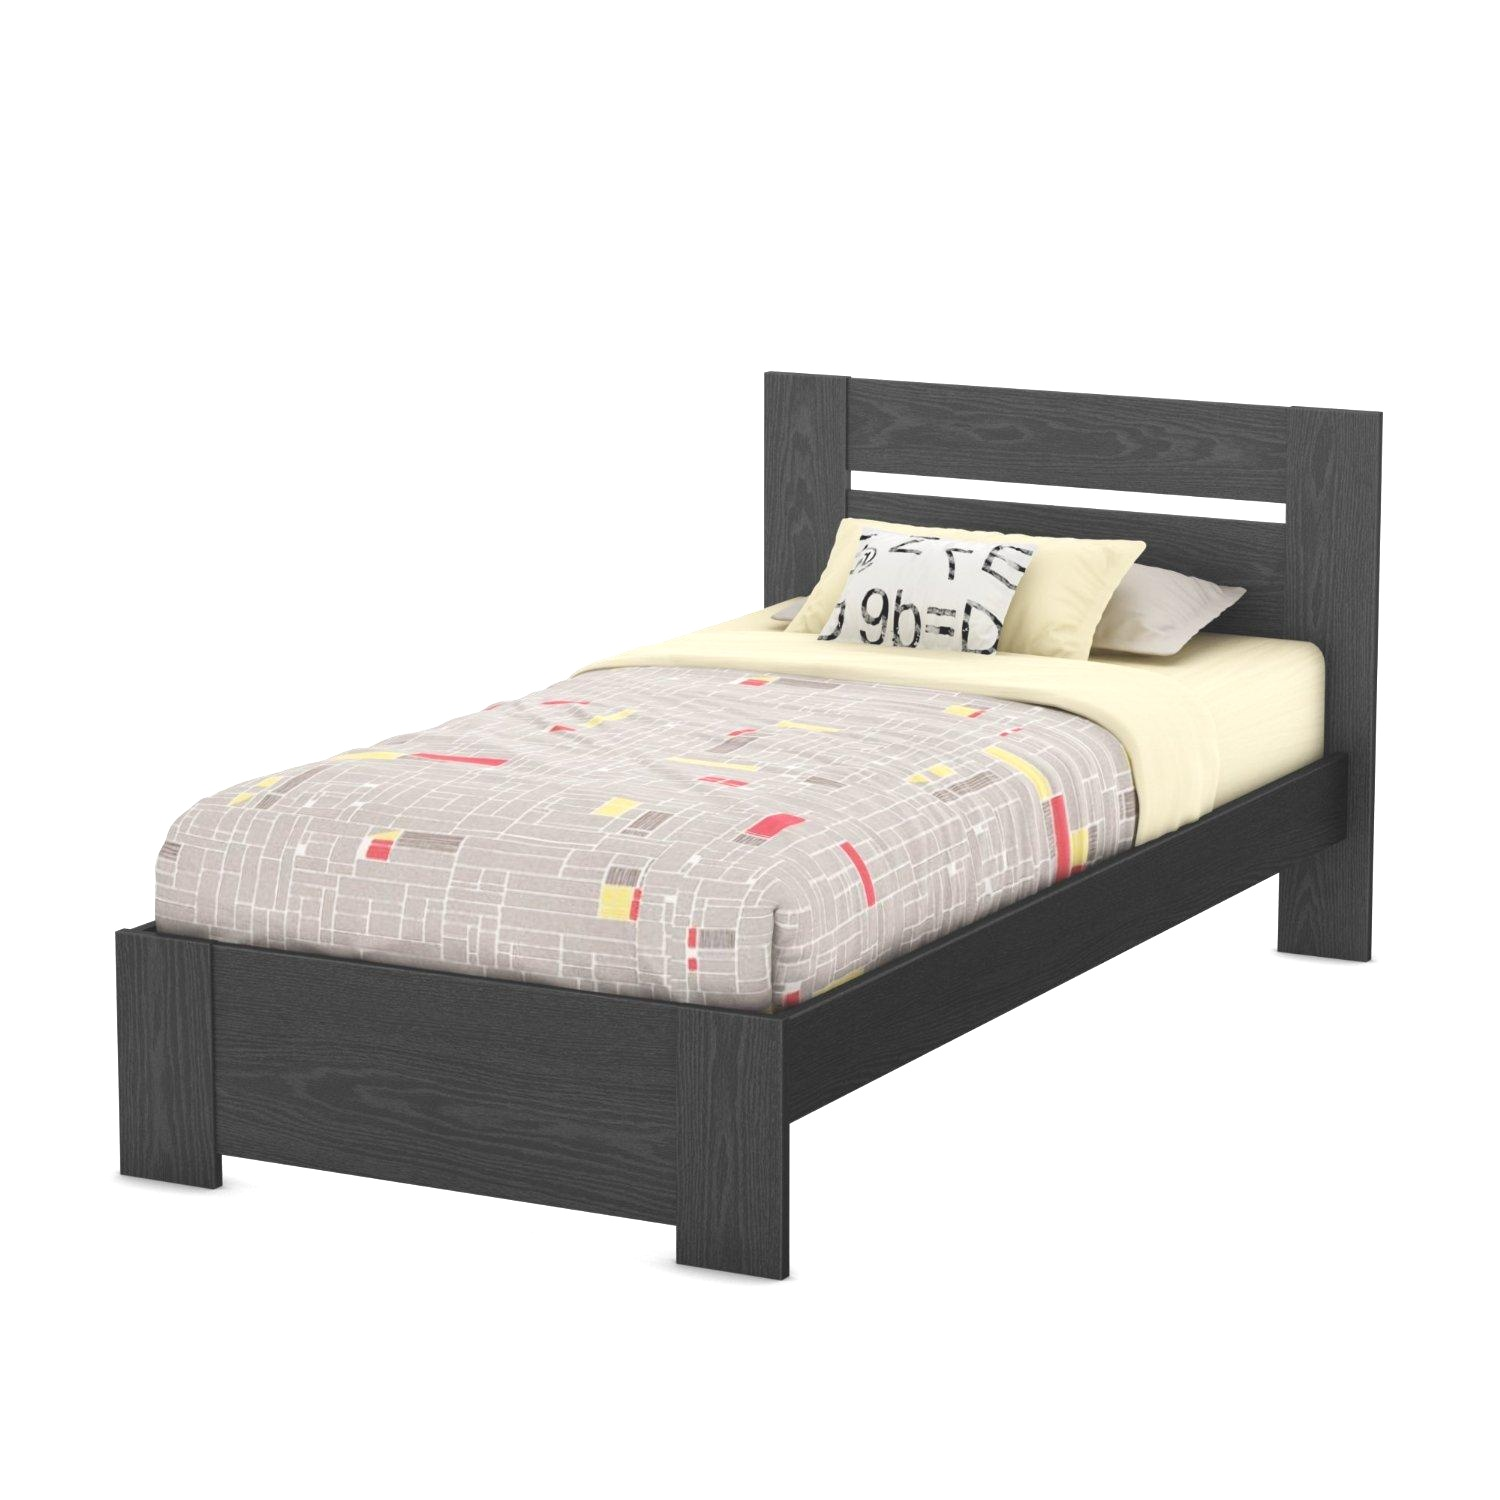 Single Beds For Sale Twin Bed Frames For Sale Is So Famous But Why Roy Home